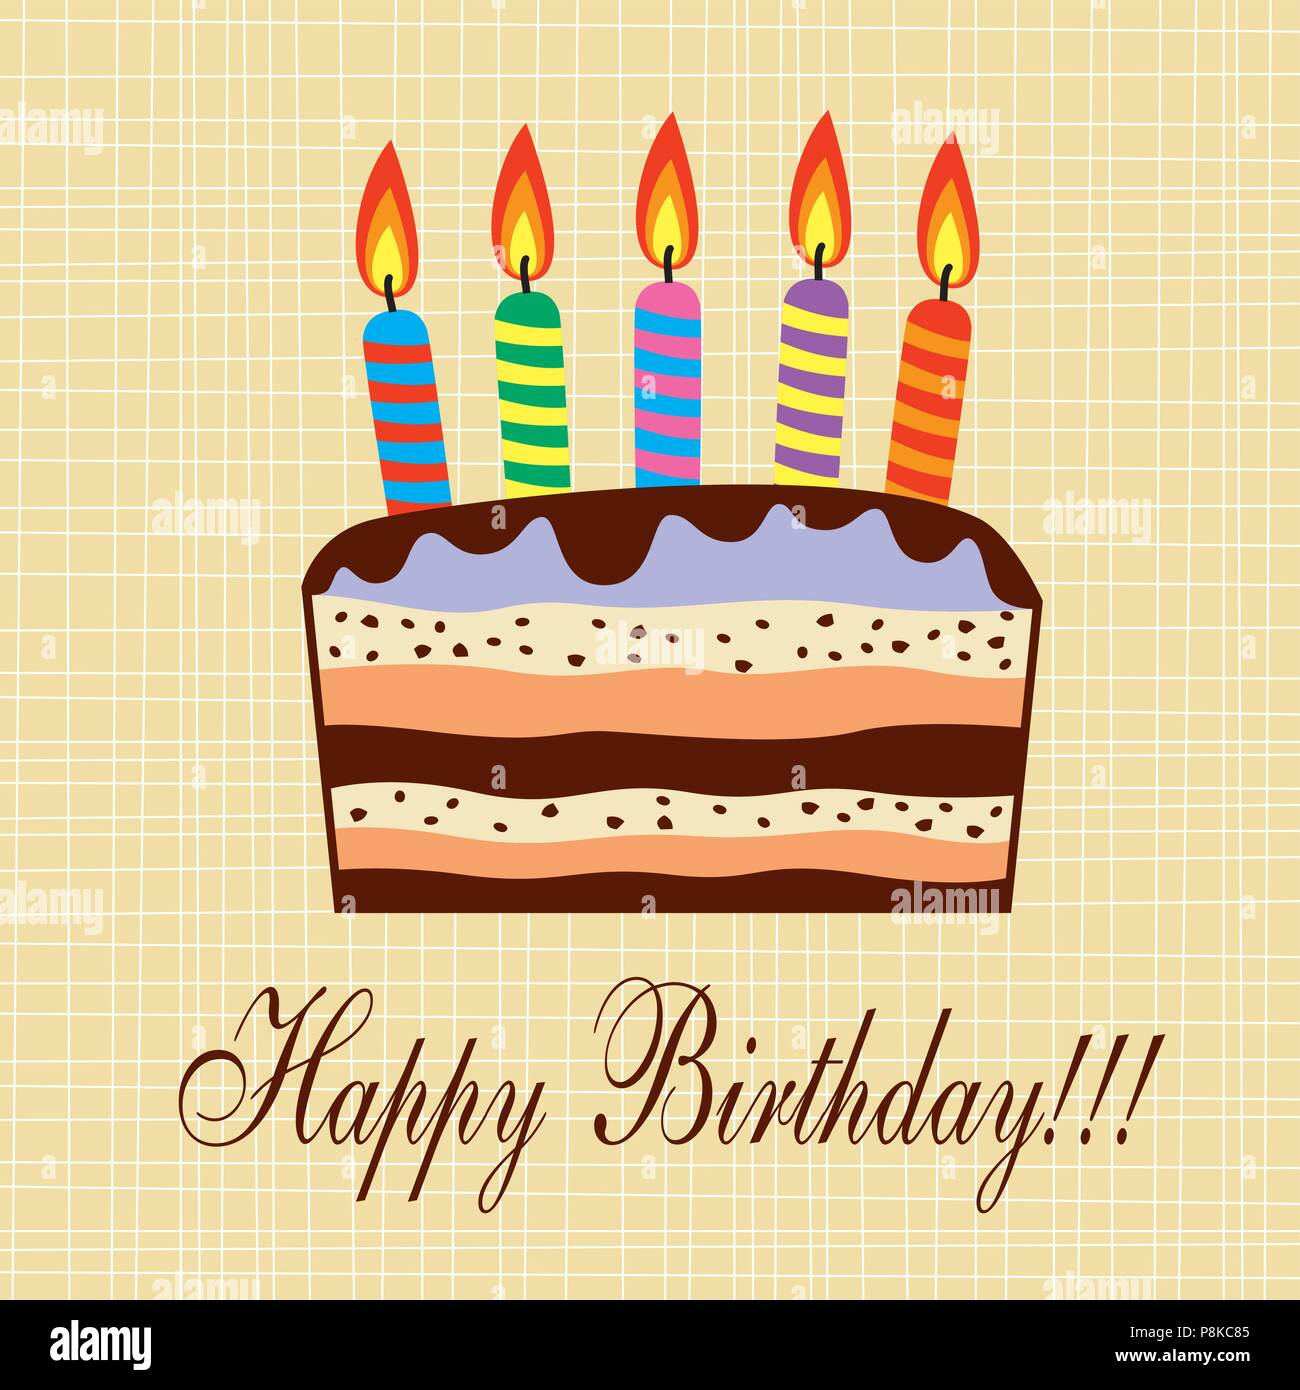 Vector Birthday Cake With Candles Stock Vector Art Illustration